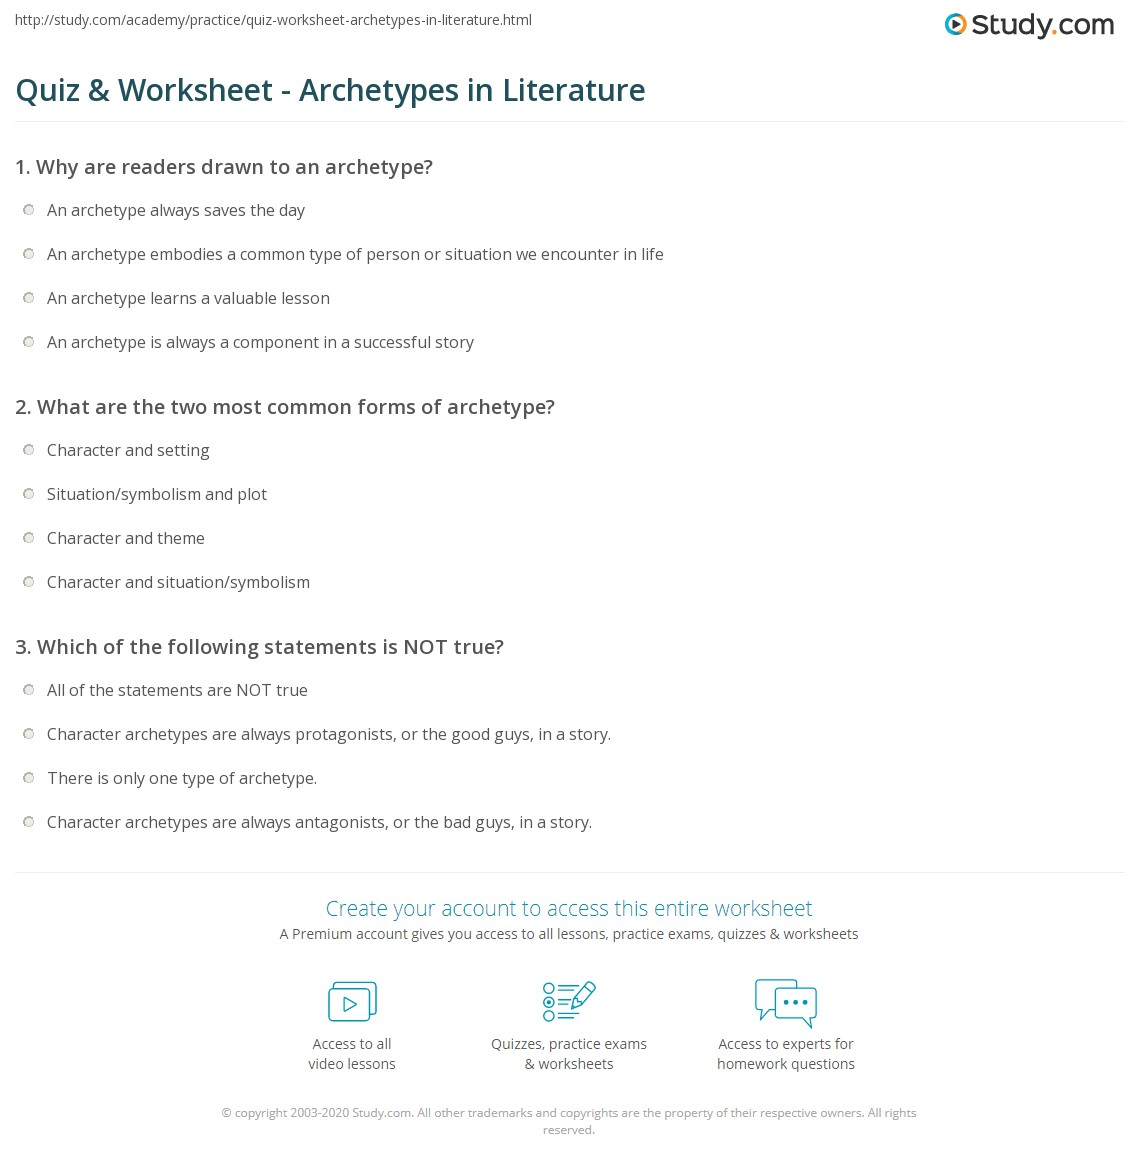 quiz worksheet archetypes in literature. Black Bedroom Furniture Sets. Home Design Ideas